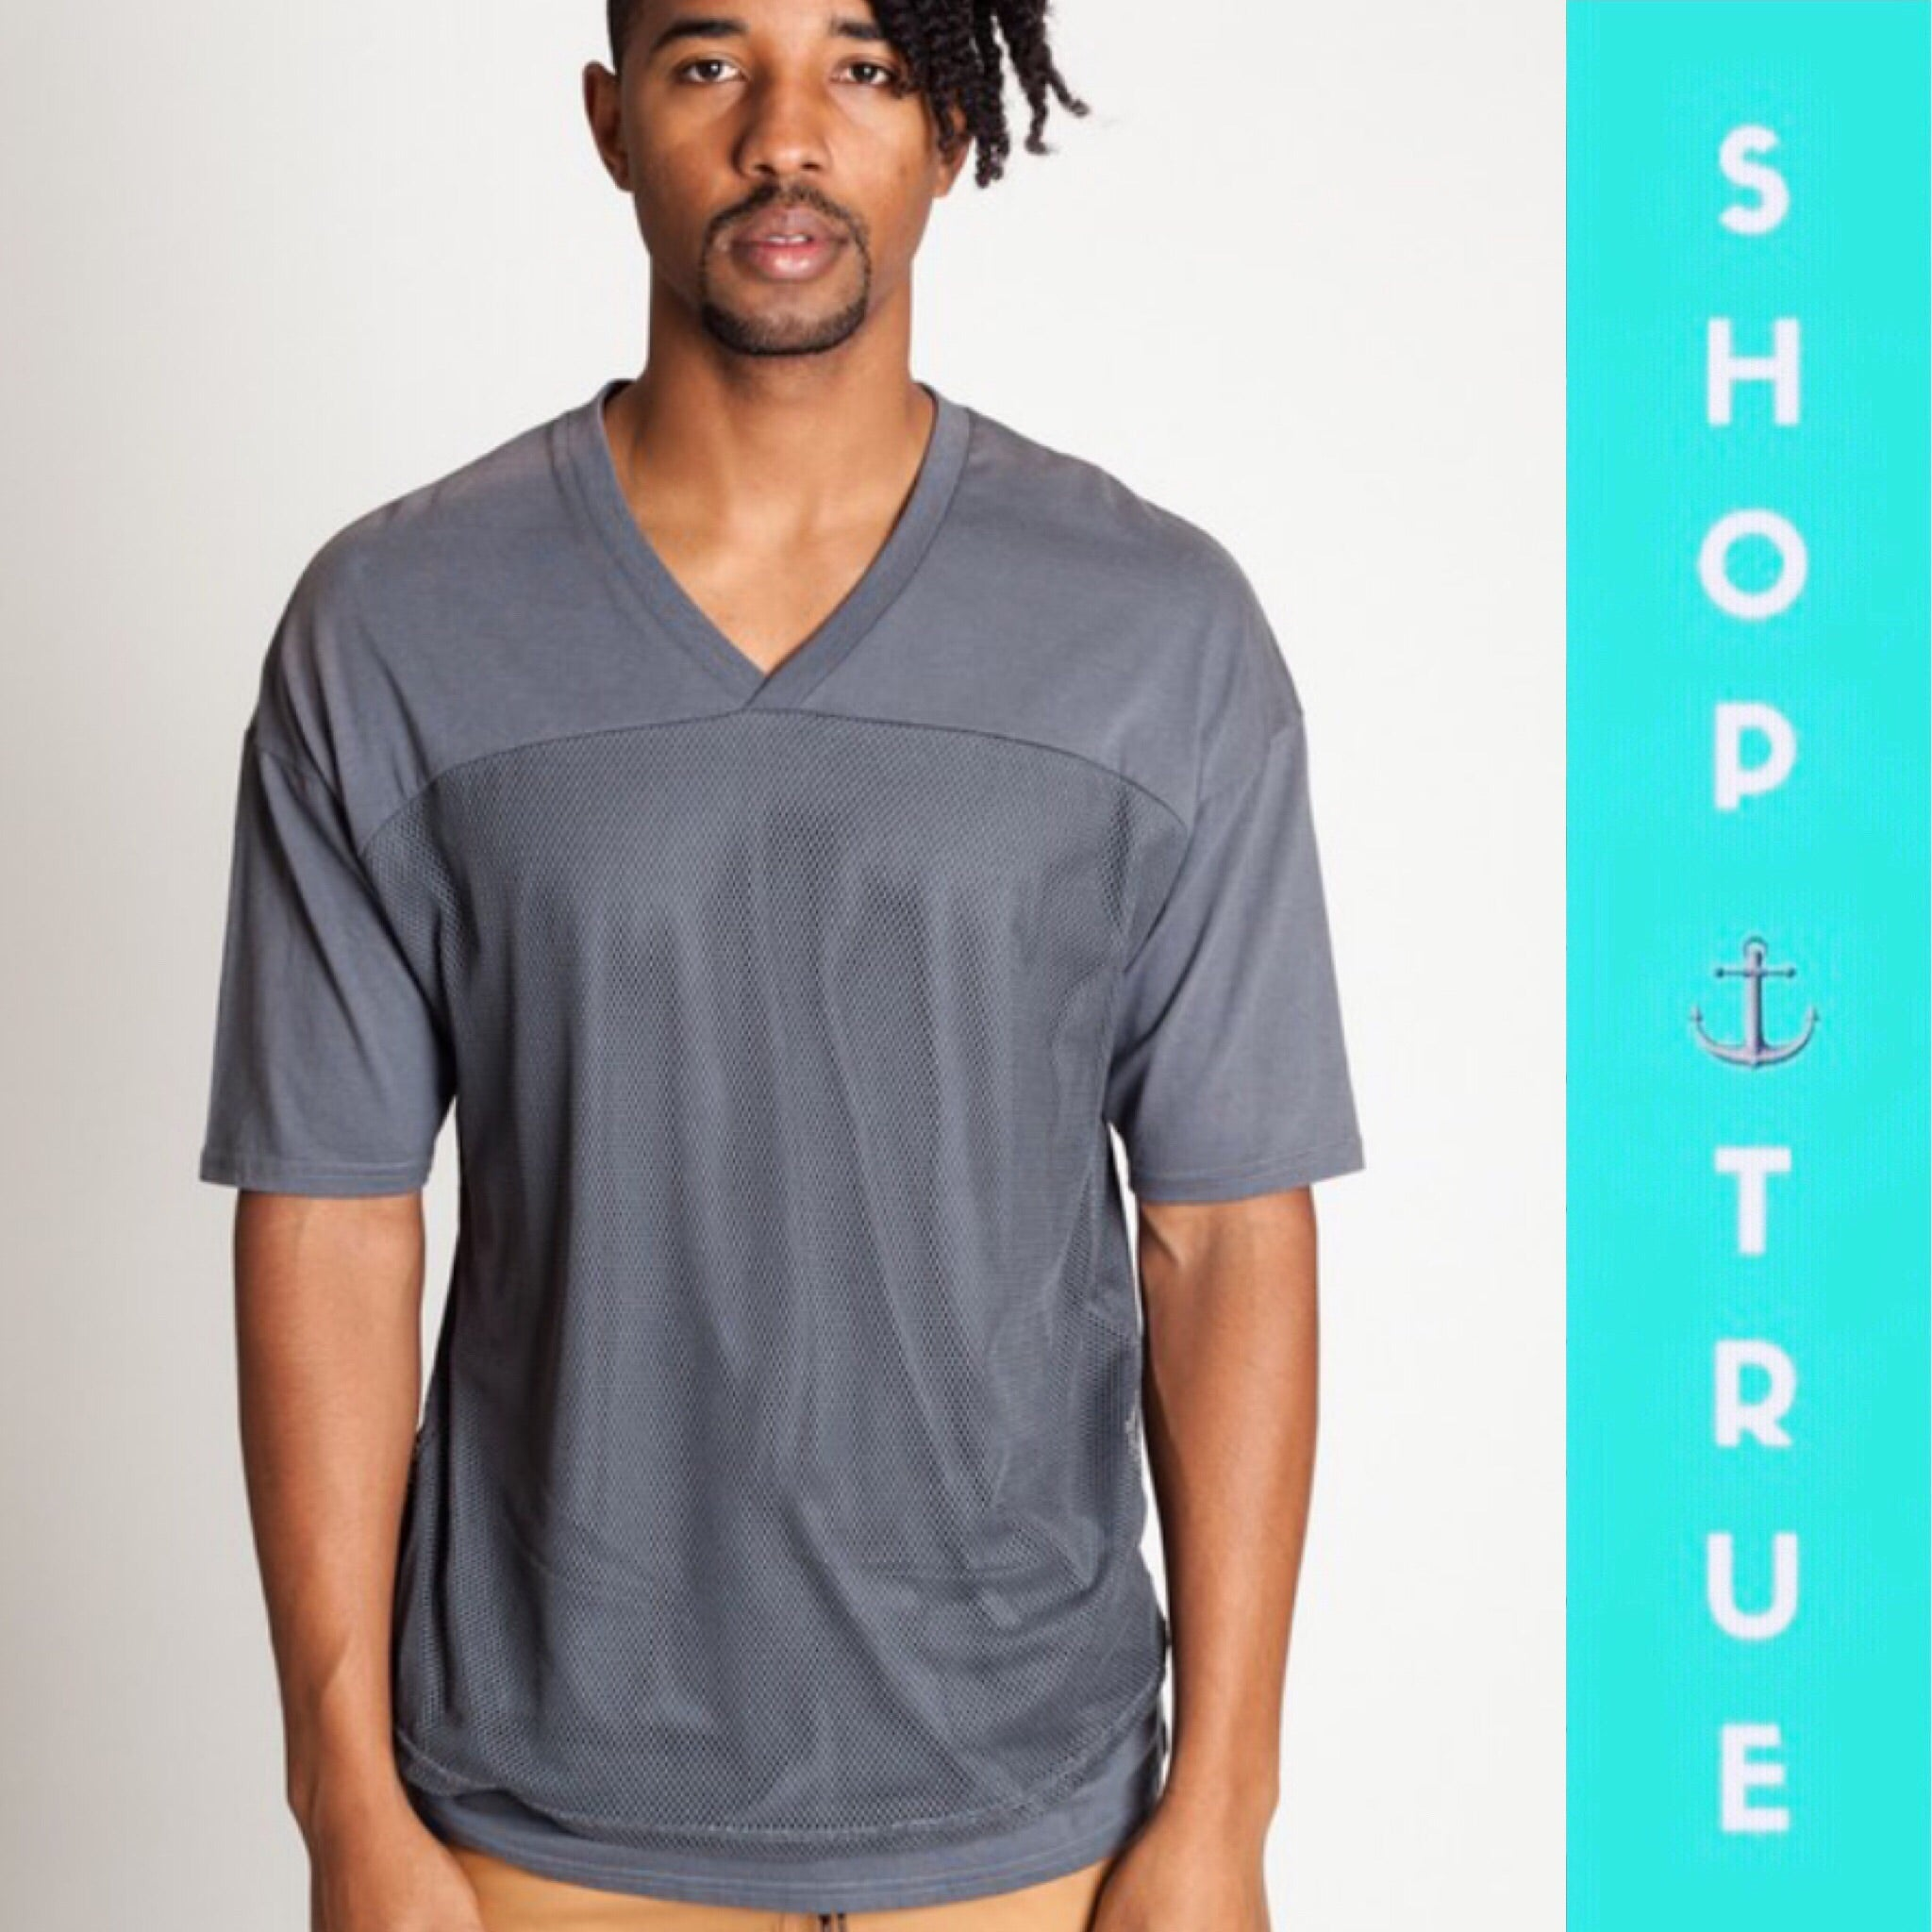 Gray Mesh Men's Short Sleeve Shirt - TRUE.